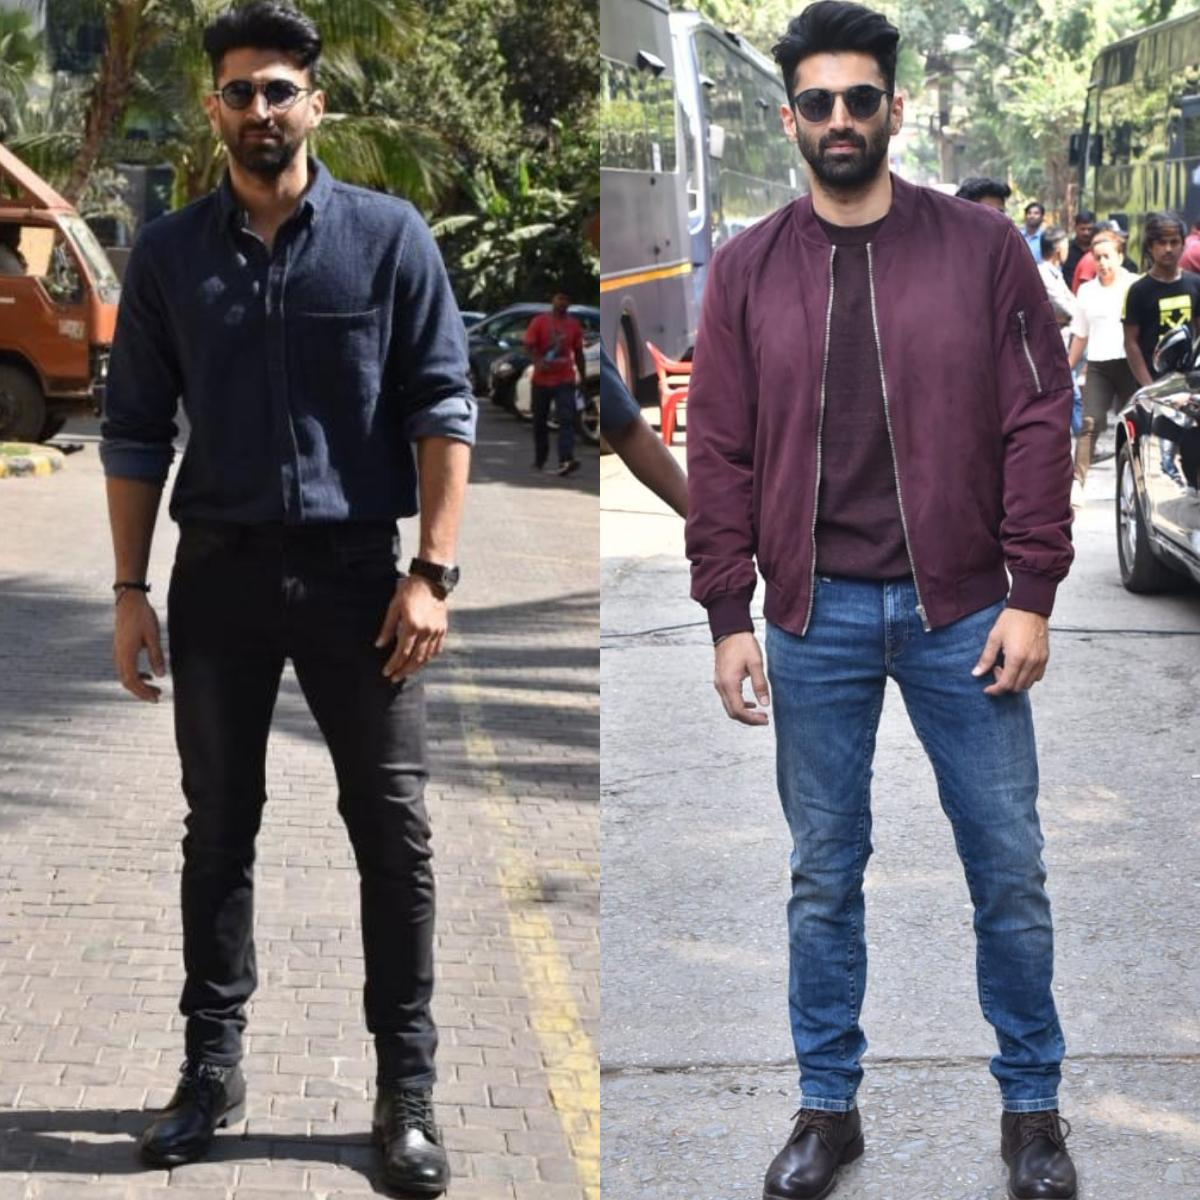 Aditya Roy Kapur Malang Actor Proves Men Can Rule The Style Game Effortlessly With These Promotional Looks